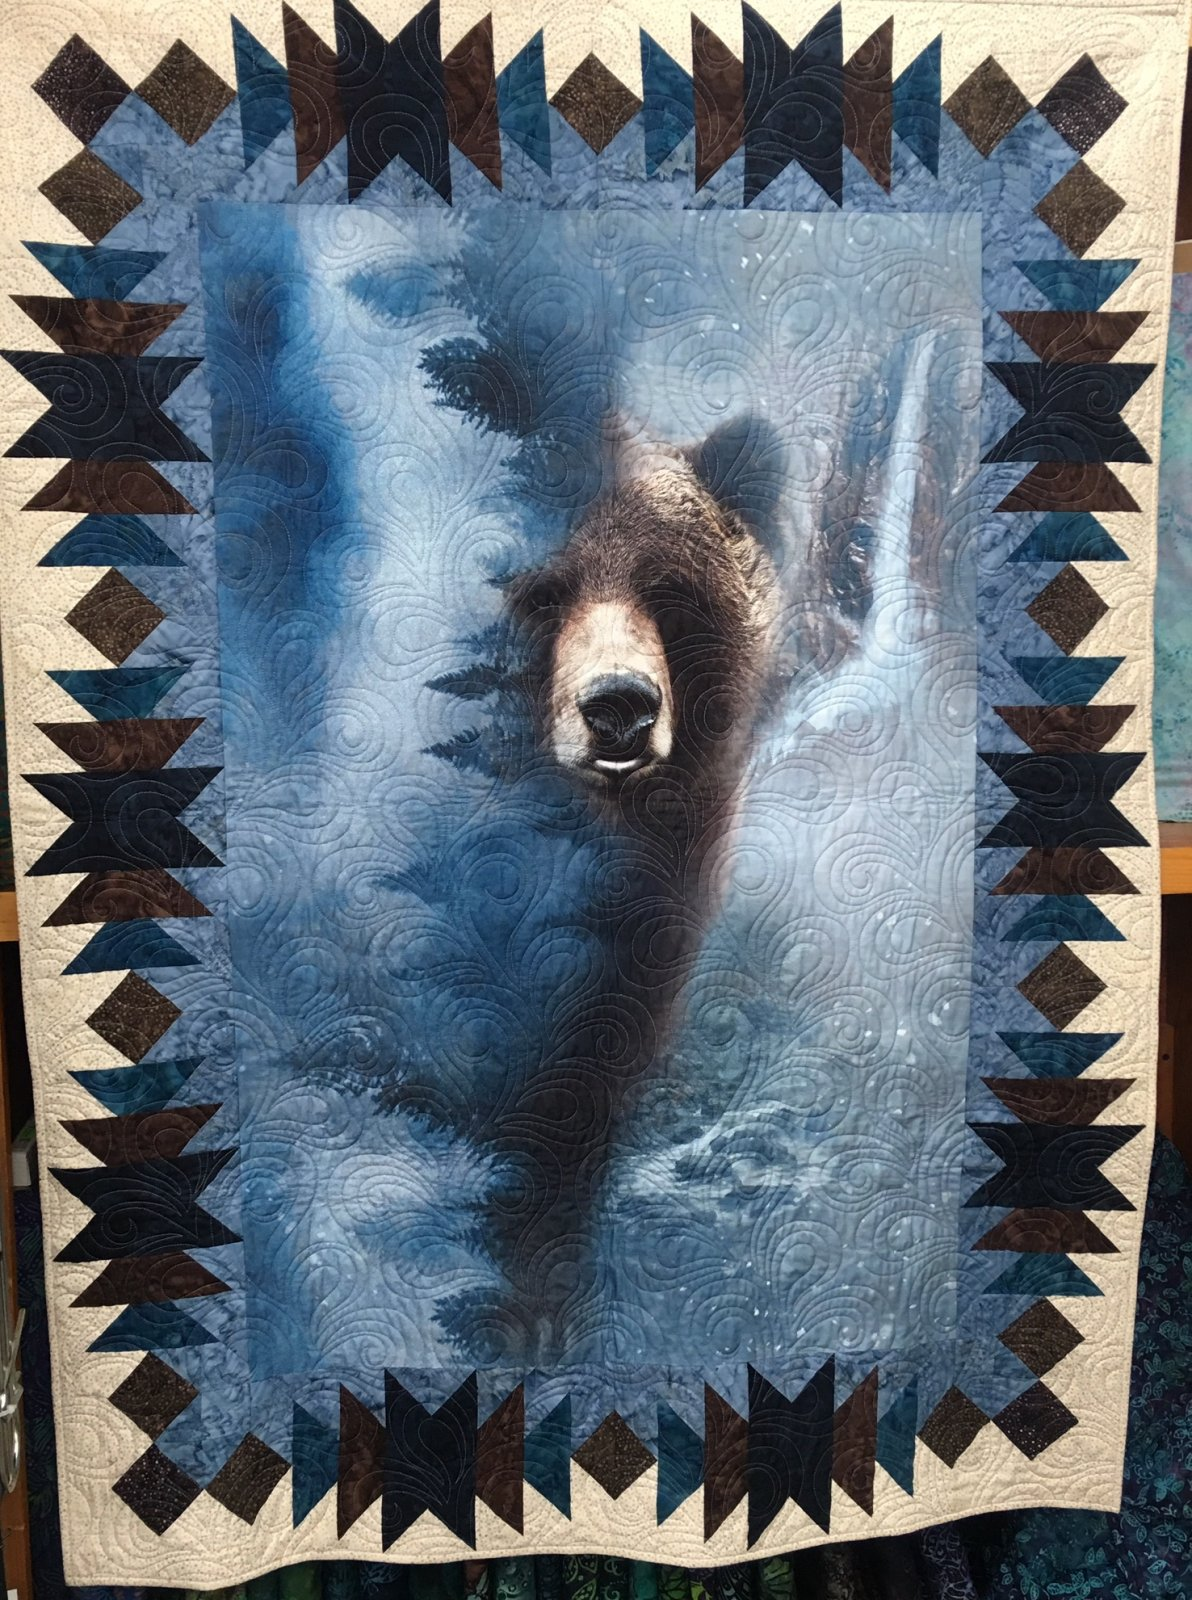 Echo Bear Quilt Kit - Includes batik fabrics and Hoffman Digital Bear Panel